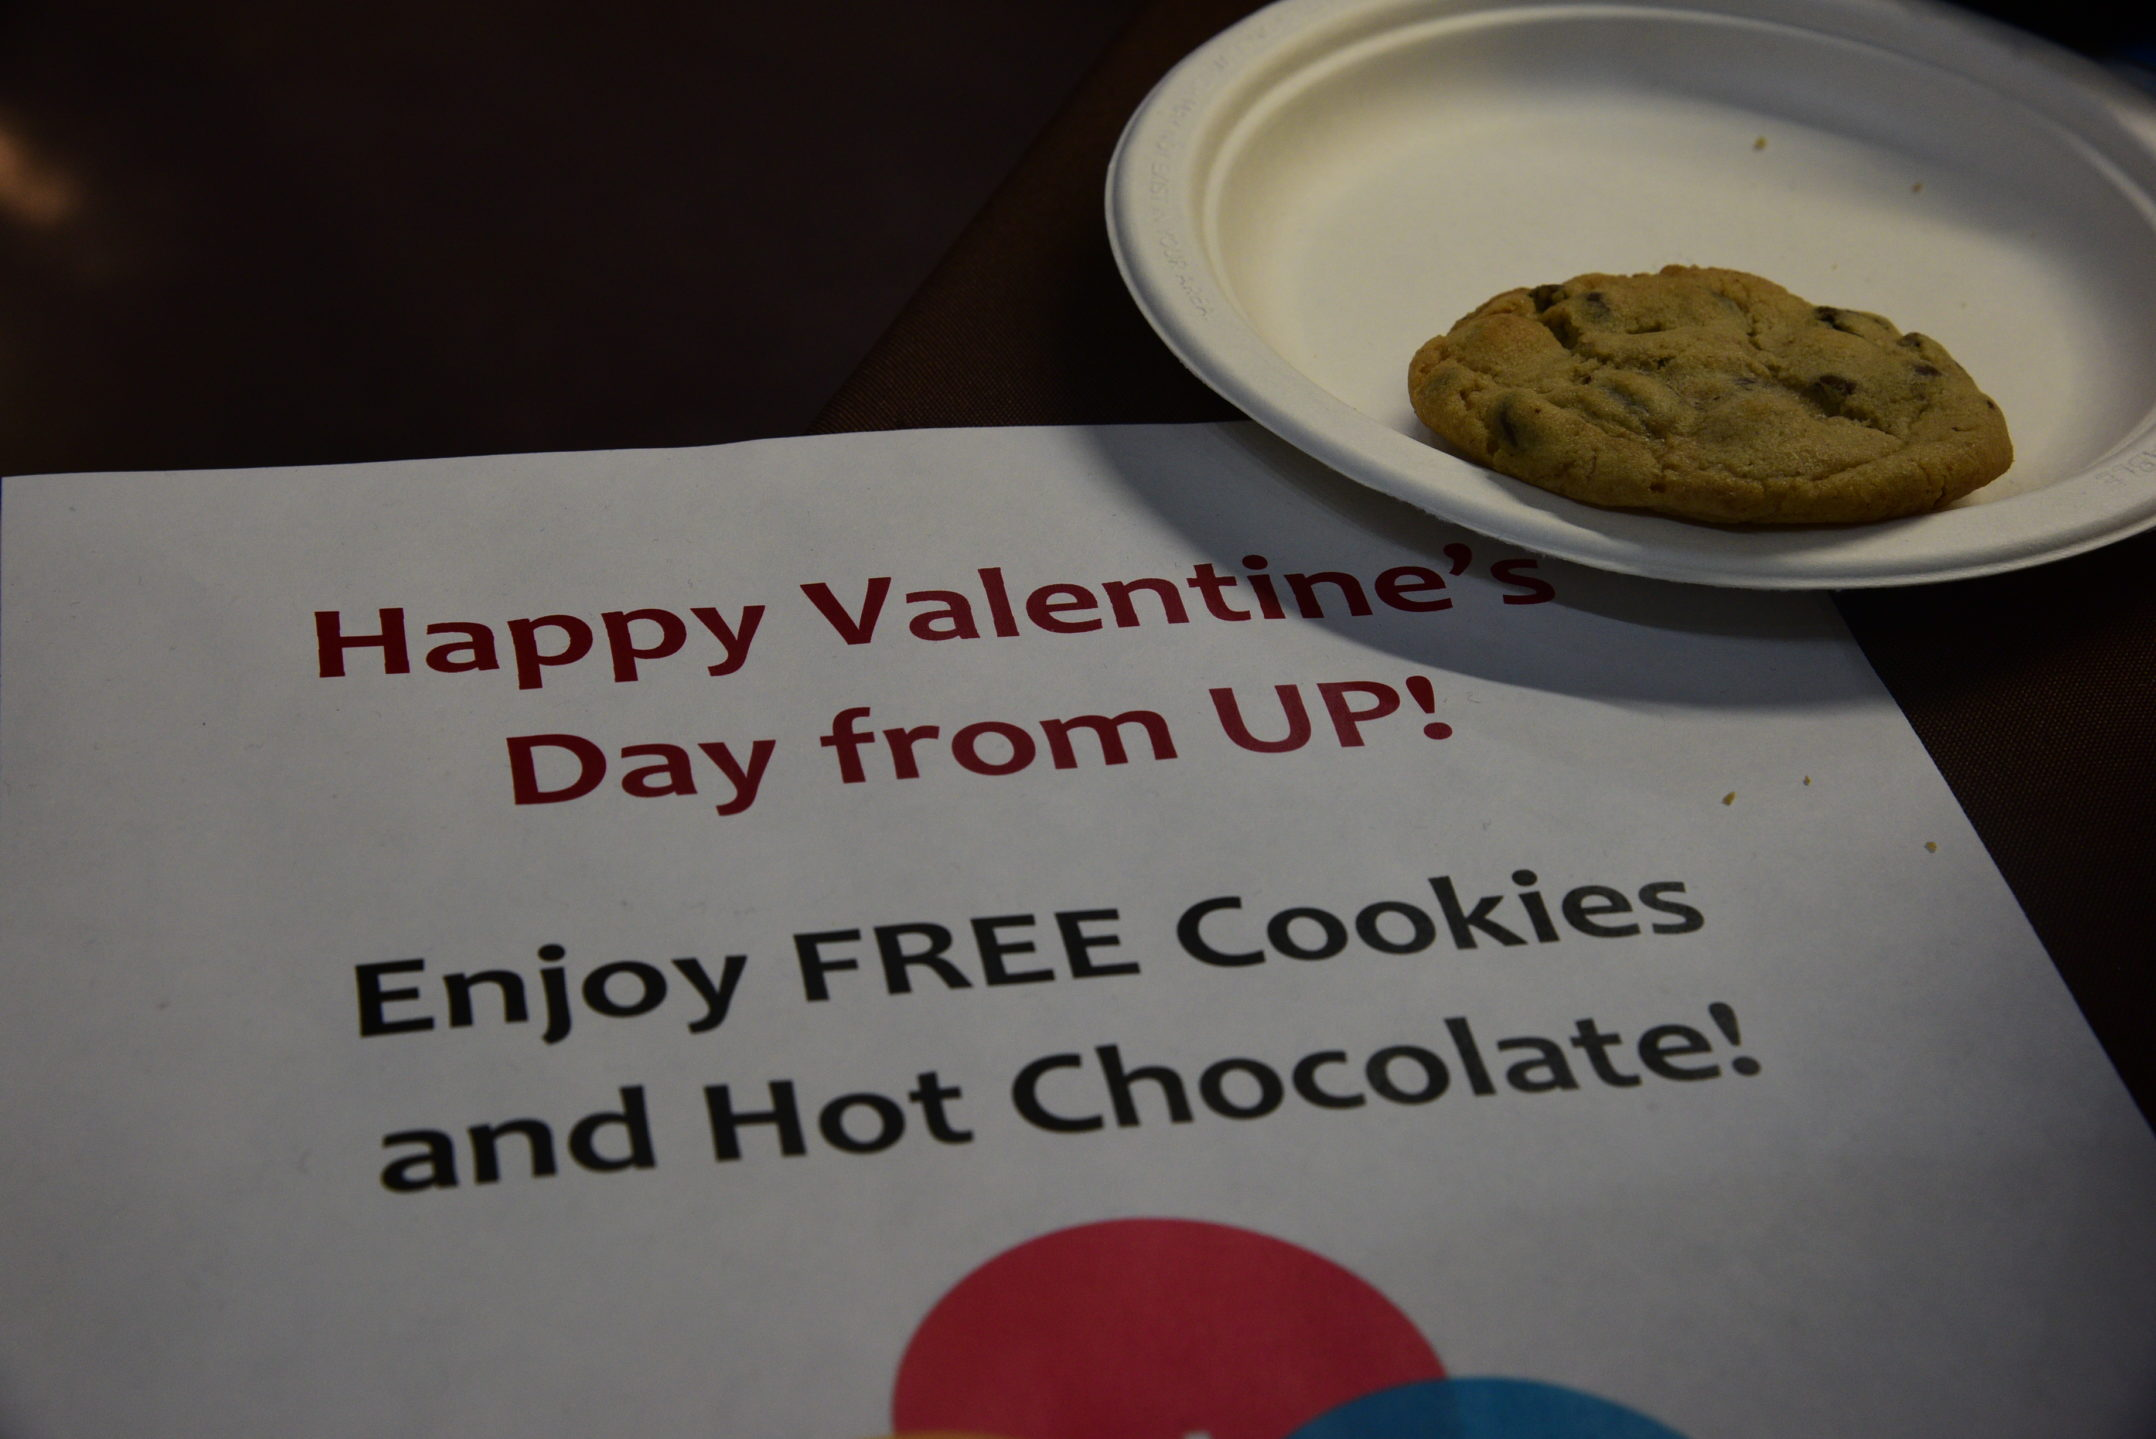 University Productions  celebrated Valentine's Day by sharing free cookies and hot chocolate in the University Center. (Ashley Omoma/B&W Staff)